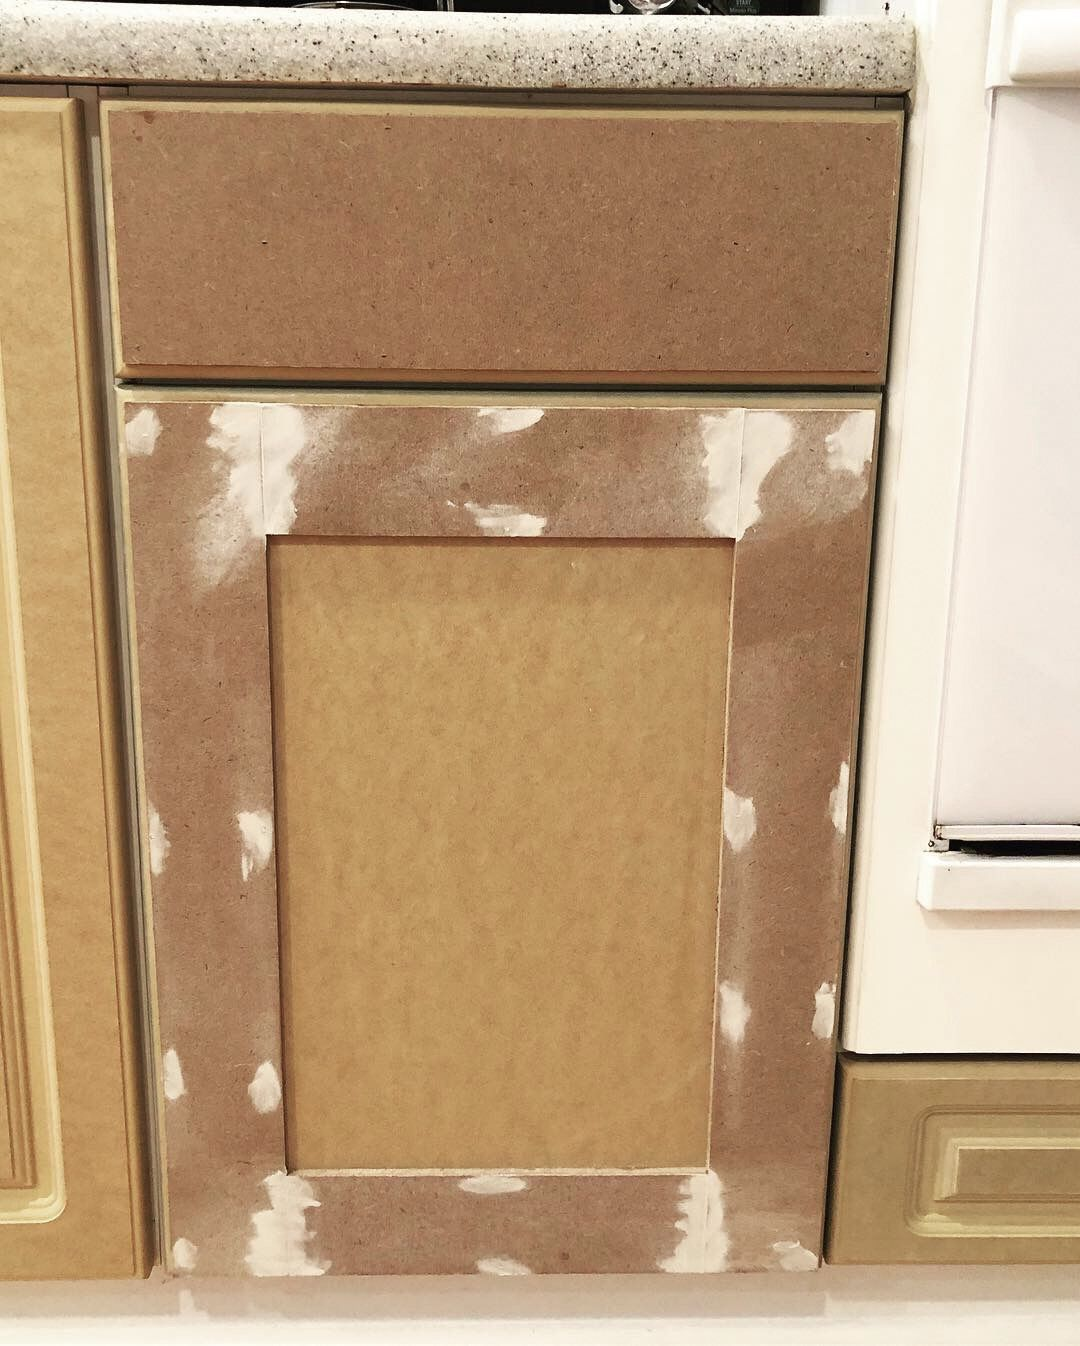 Easy Diy Kitchen Cabinet Reface For Under 200 In 2020 Refacing Kitchen Cabinets Cabinet Refacing Diy Cabinet Refacing